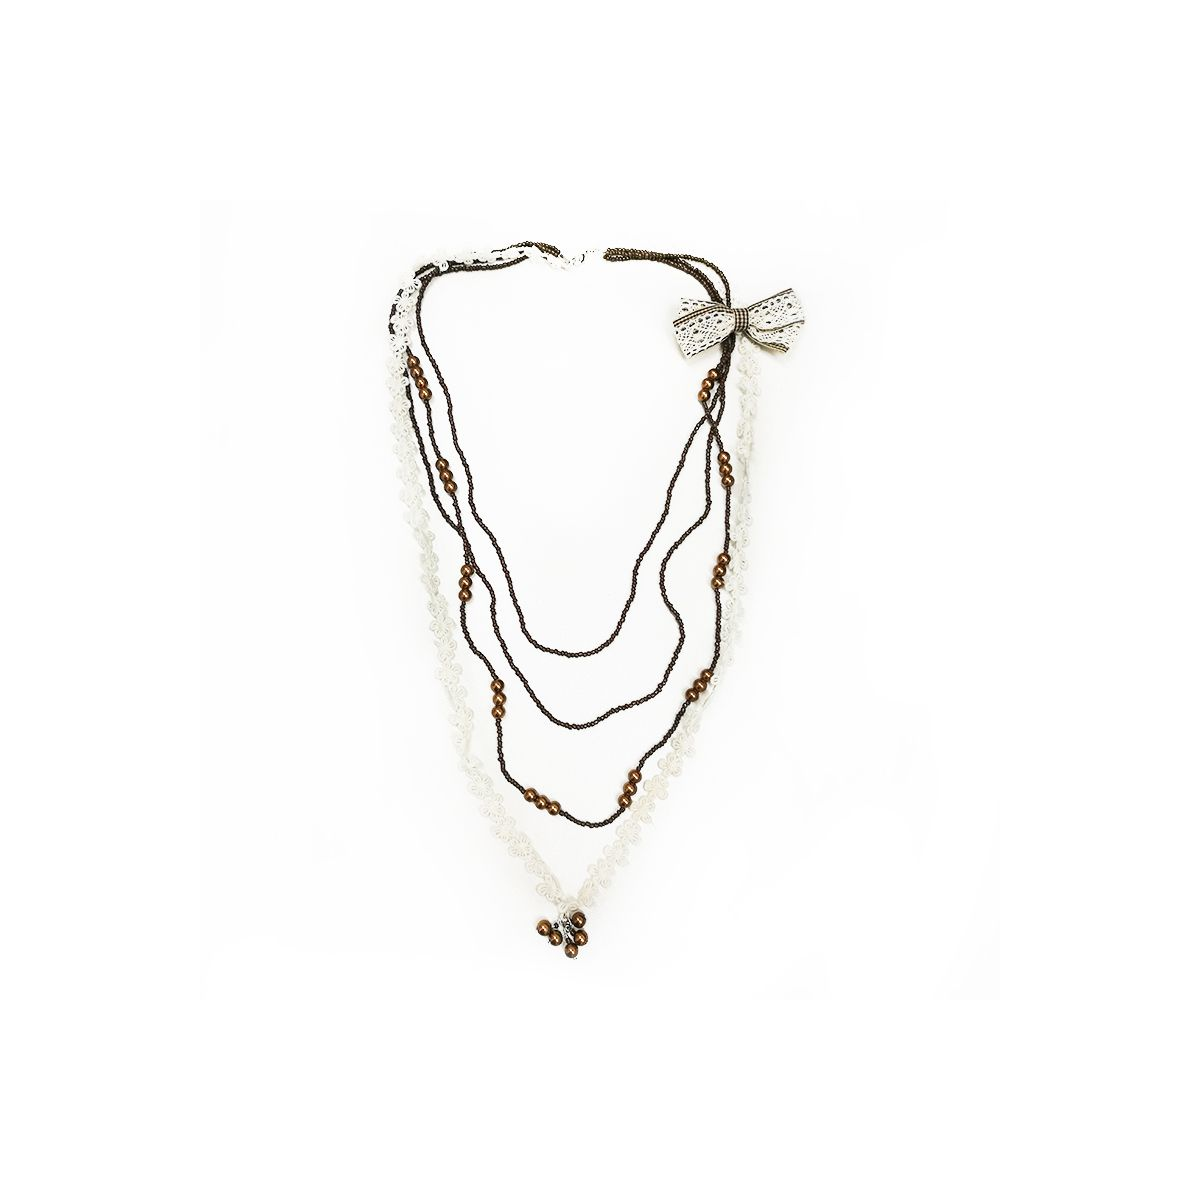 Bow Lace Beads Necklace - White/Brown (OLD110133WB)